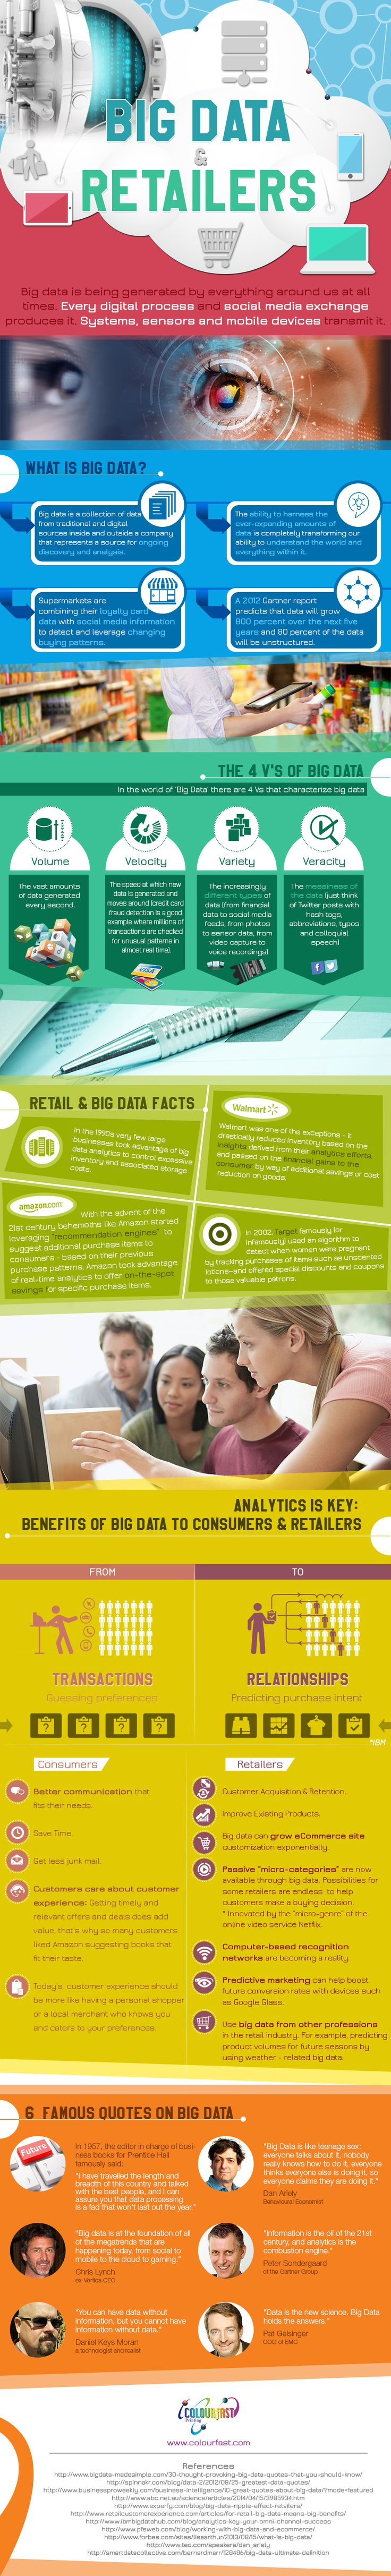 ColourFast-Printing-IG-September Here s how retailers are utilizing big data against shoppers